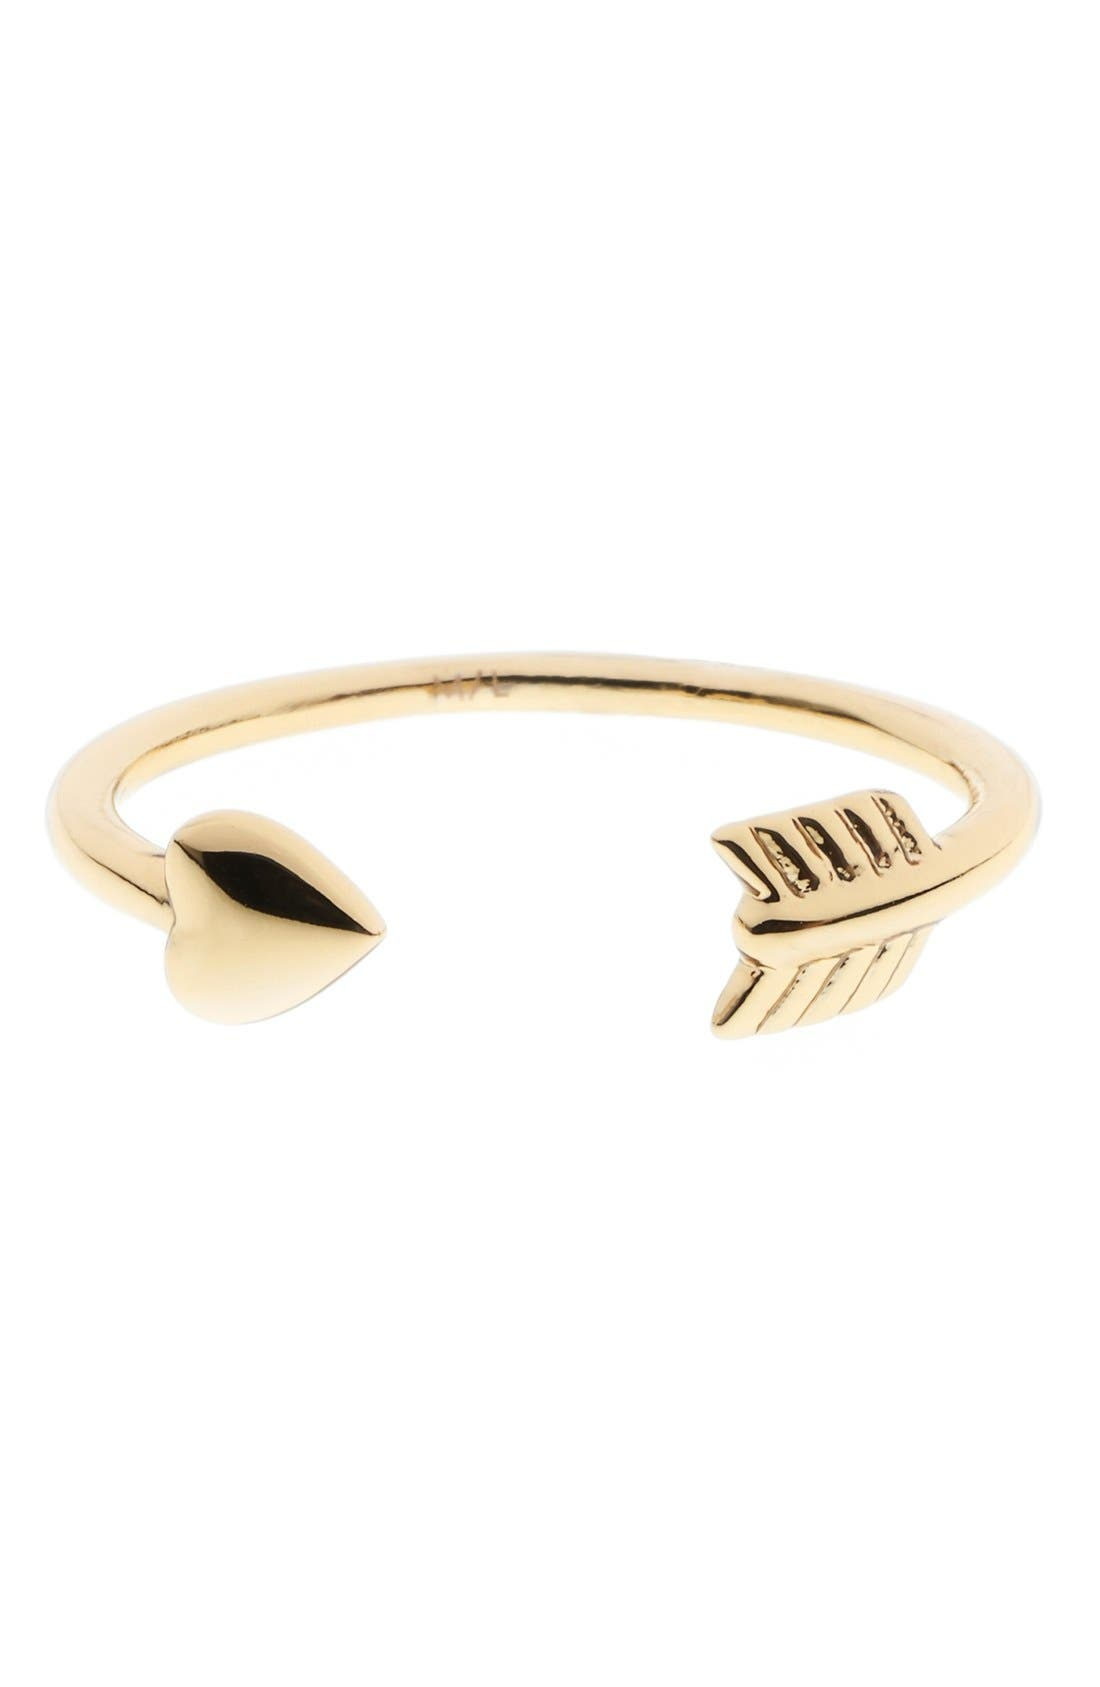 Main Image - Ted Baker London 'Cupid's Arrow' Open Ring